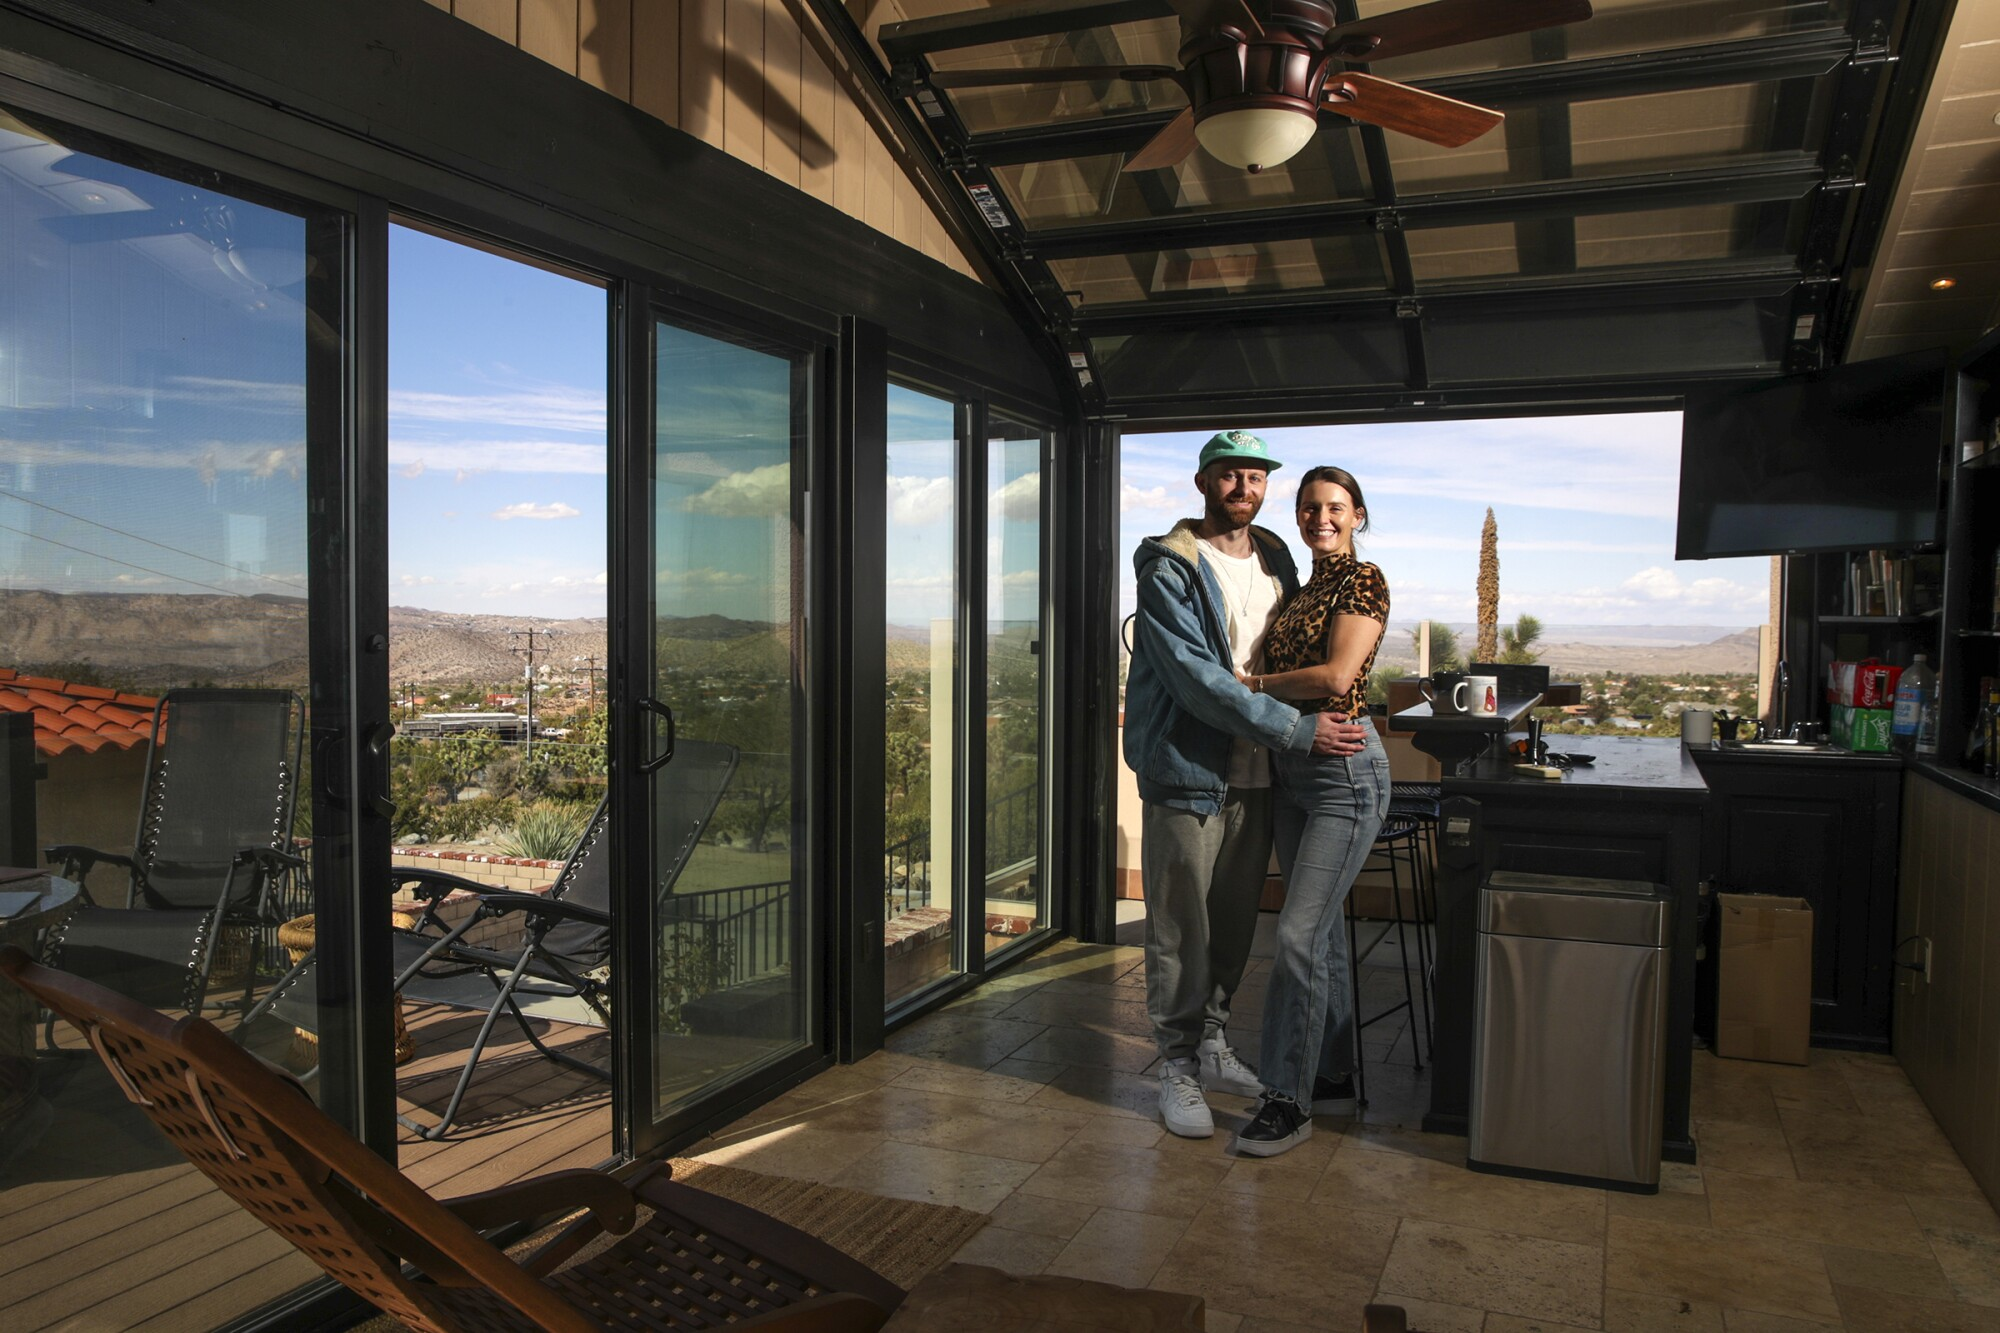 Tyler Gaul and Katelynn Rossiter left Los Angeles and found a spacious home in Yucca Valley during the pandemic.